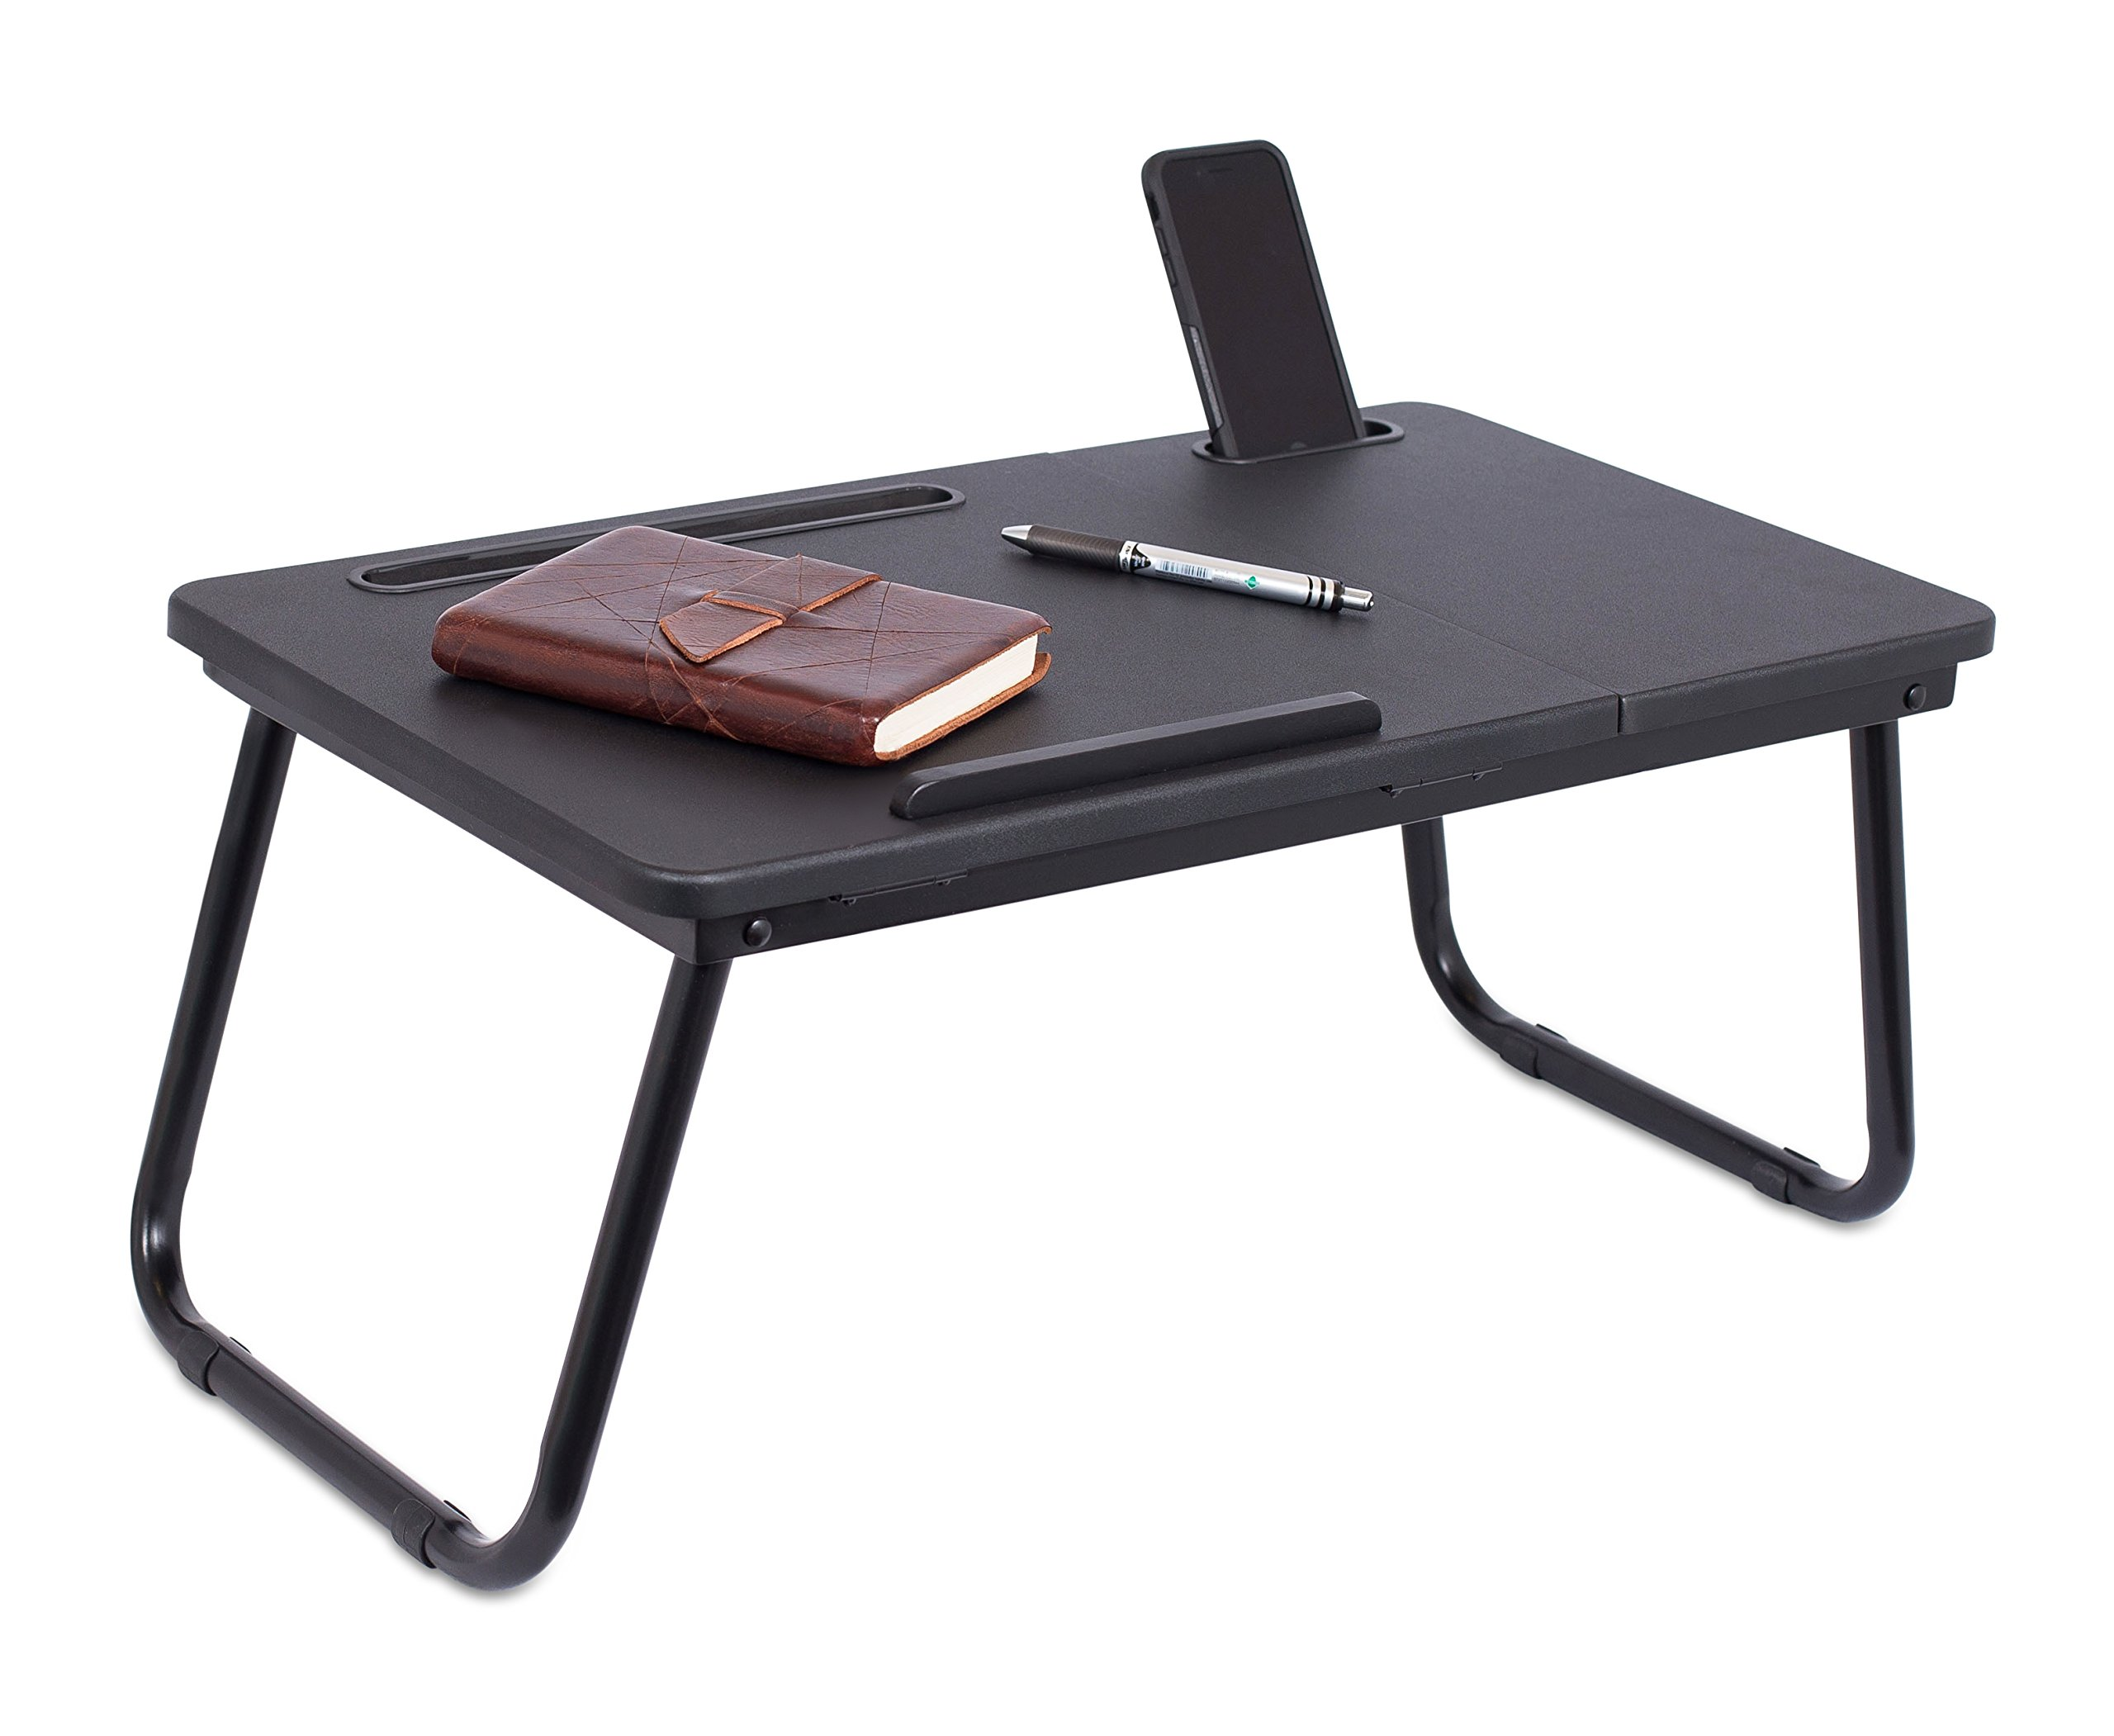 Sofia + Sam Lap Tray with Tablet & Phone Slots | Metal Folding Legs | Lap Desk with Tilting Top | Laptop Stand | Breakfast Serving Bed Tray | Black by Sofia + Sam (Image #4)